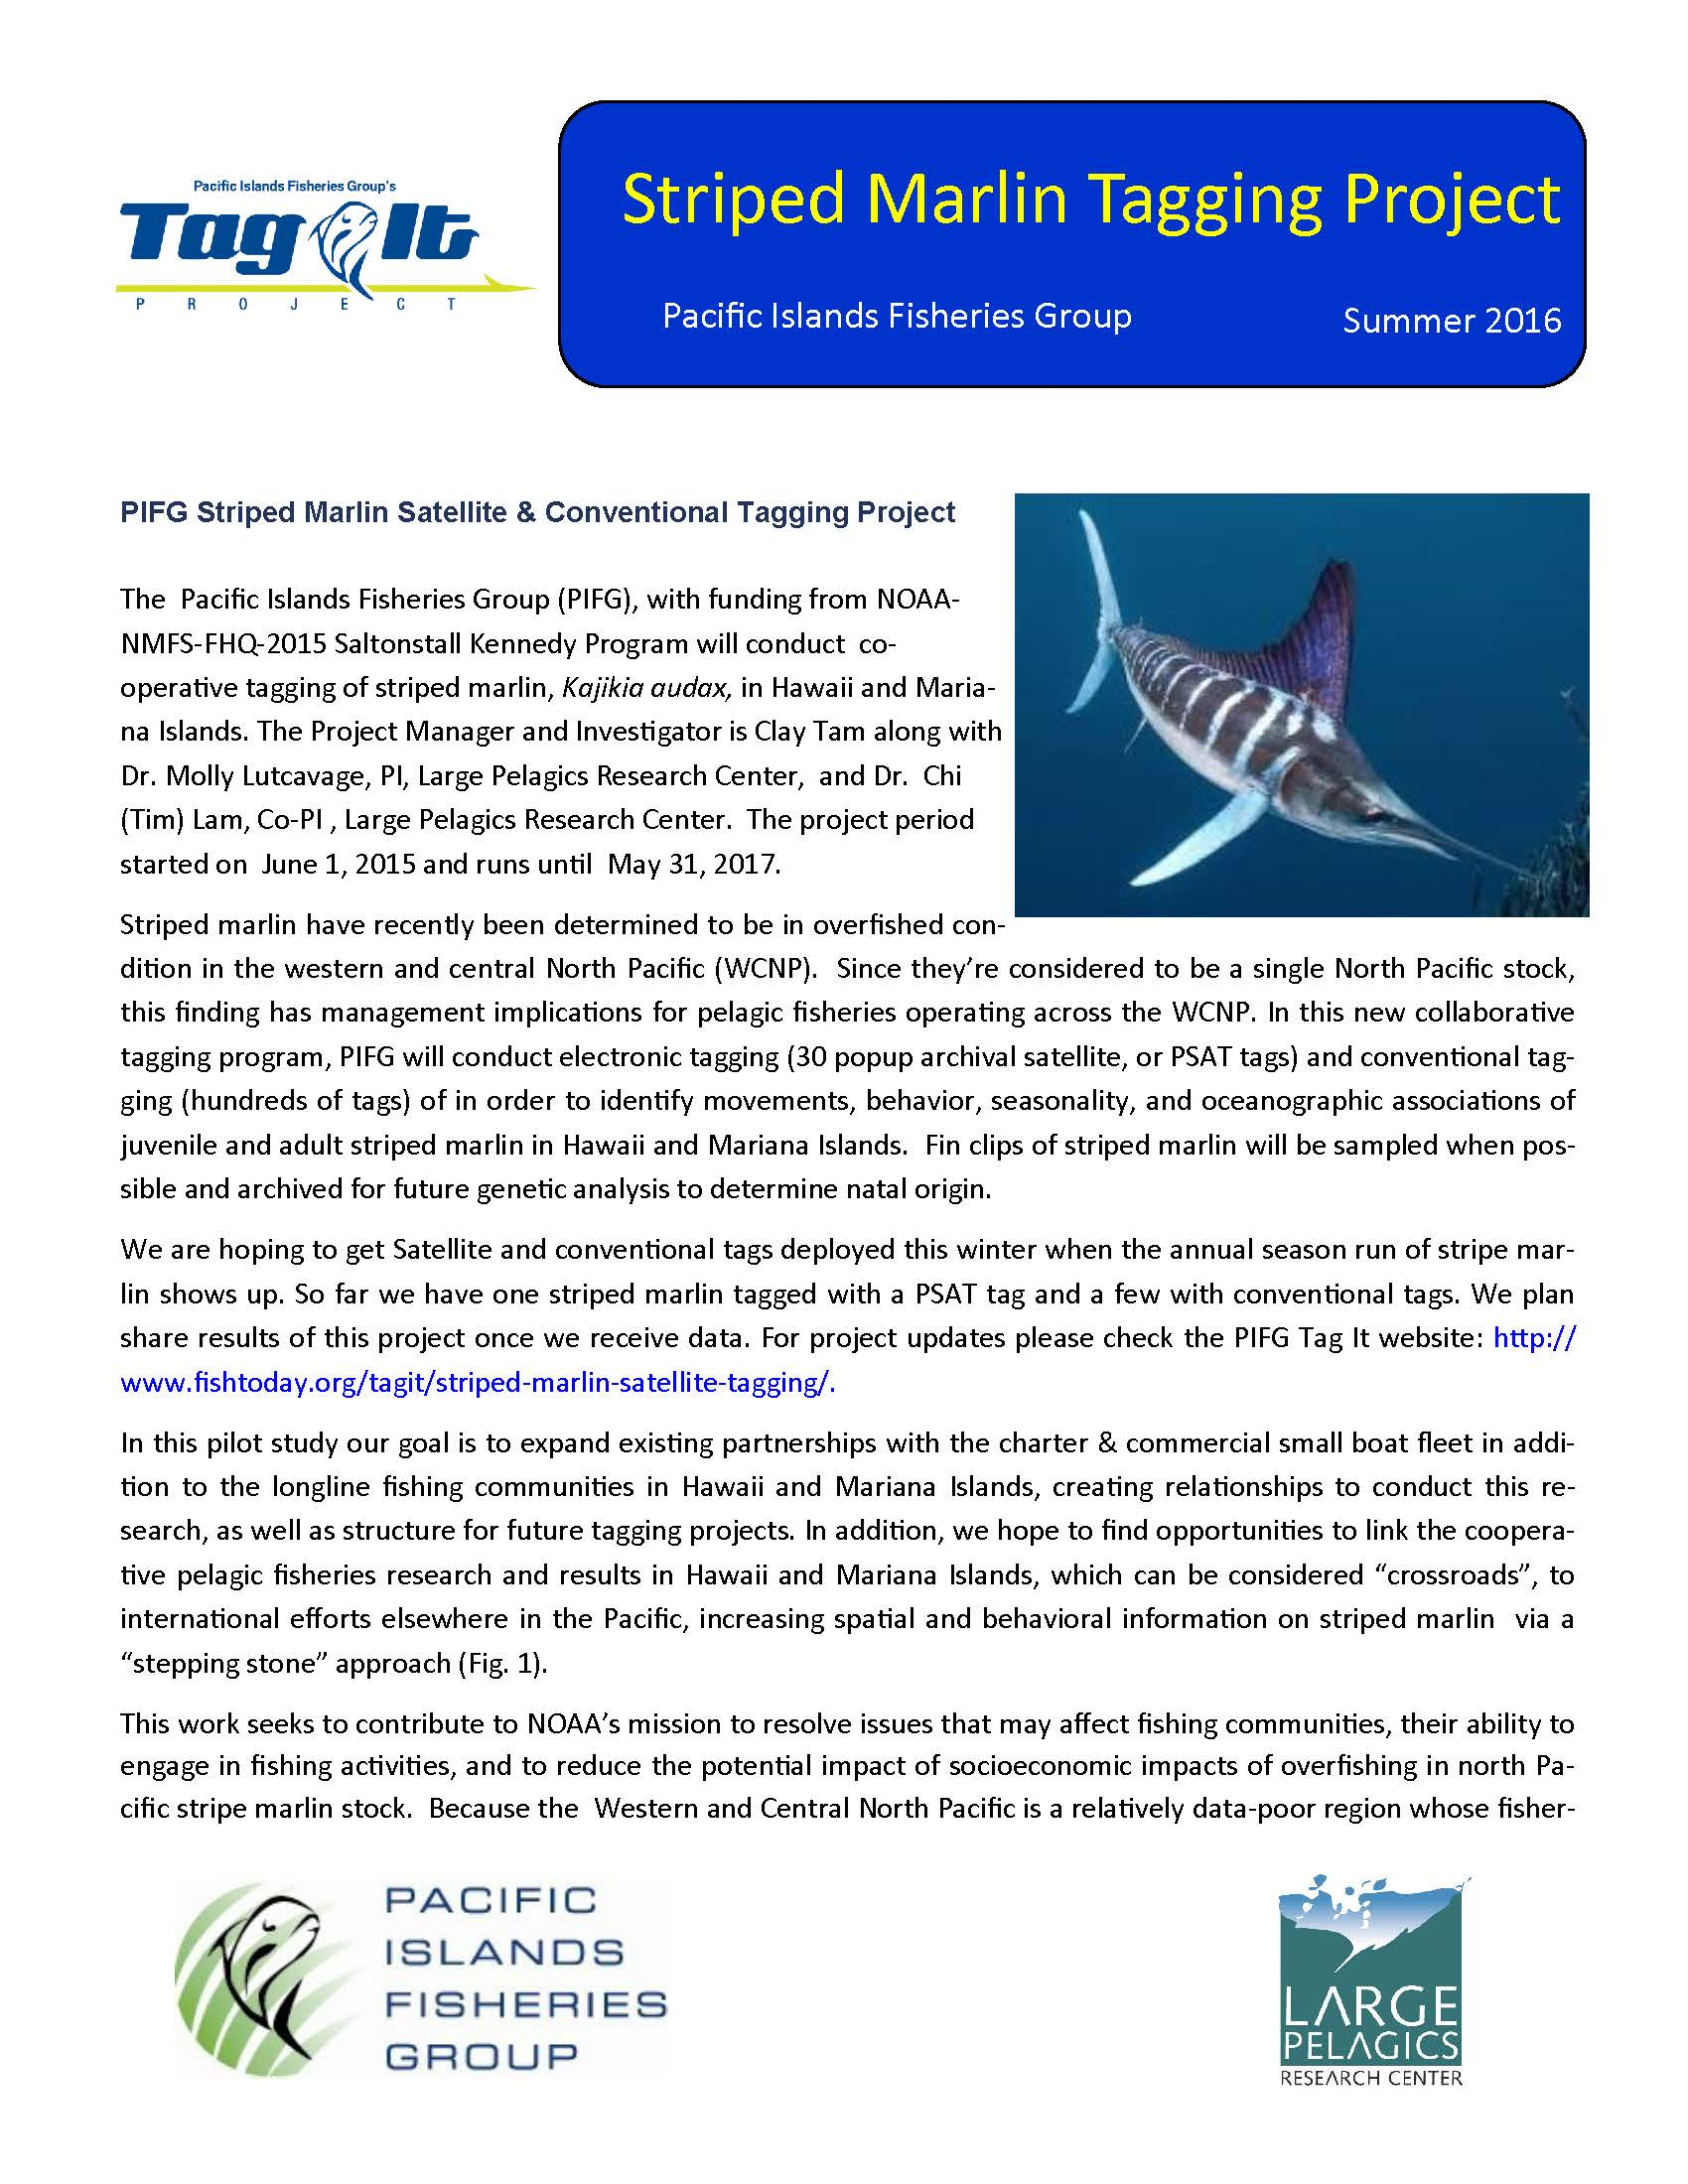 flyer-striped-marlin-tagging-proejct-10-26-2016-pg-2_page_1